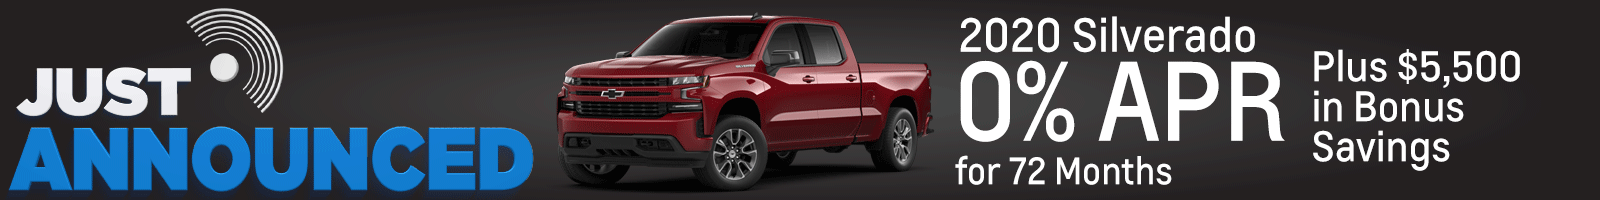 Chevy Silverado for 0% for 72 months